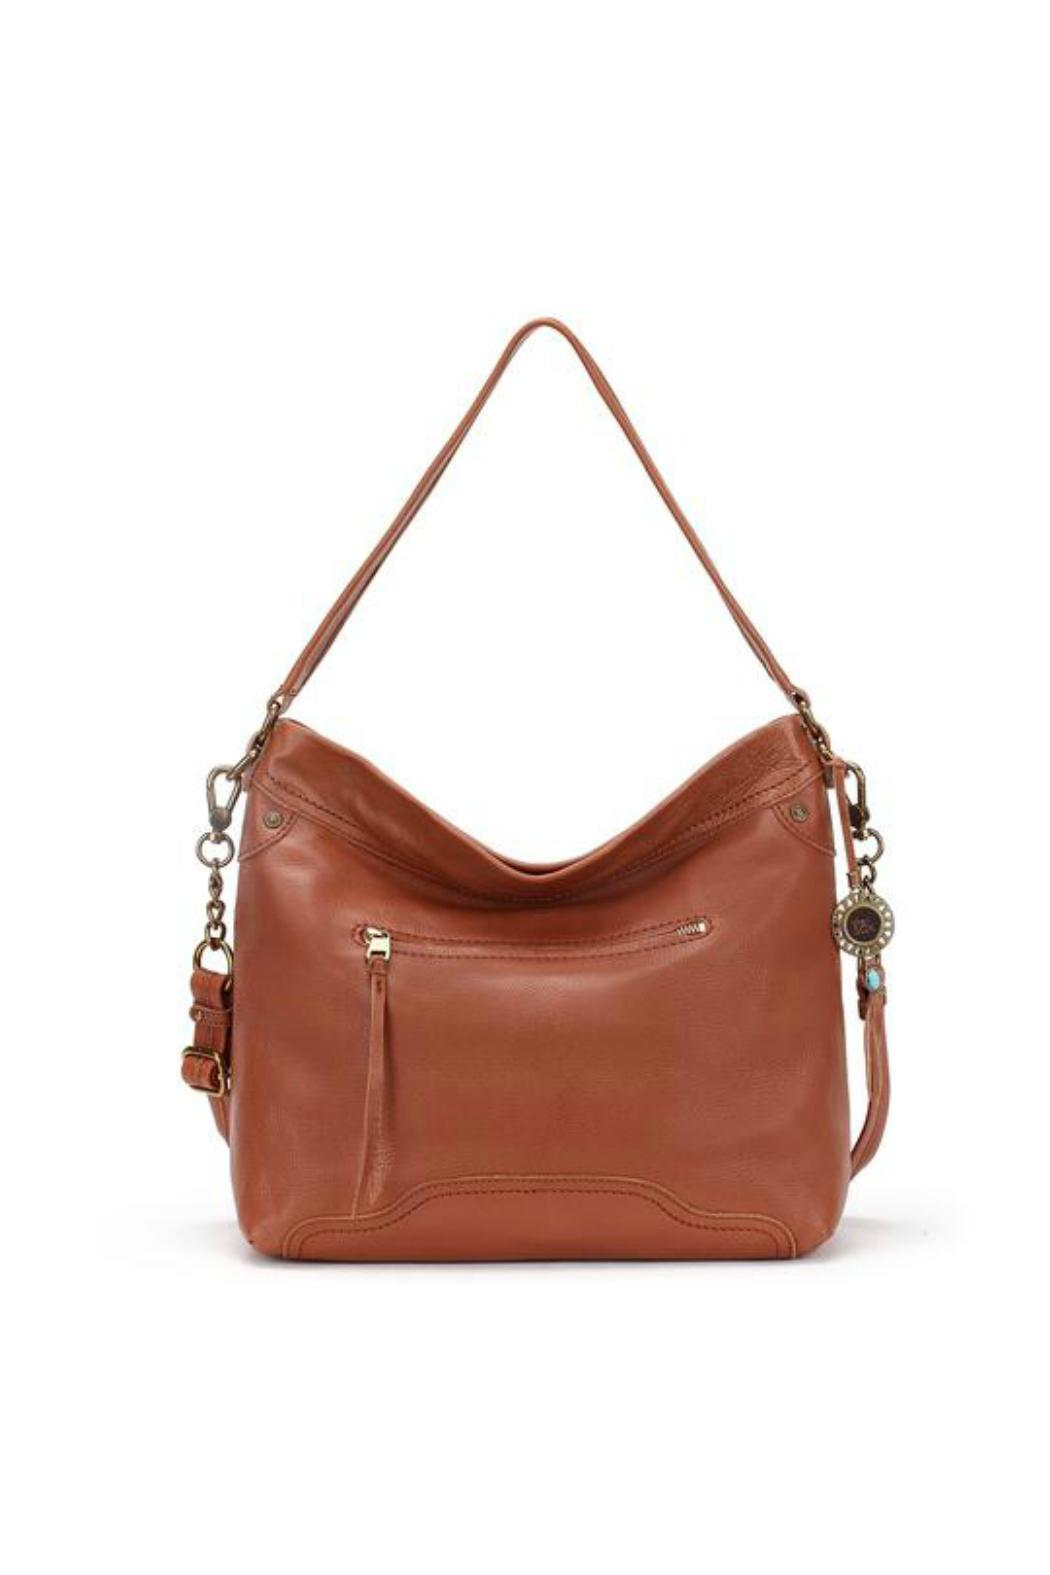 The Sak Tahoe Hobo Cognac Tote from Tennessee by Lori\'s ...